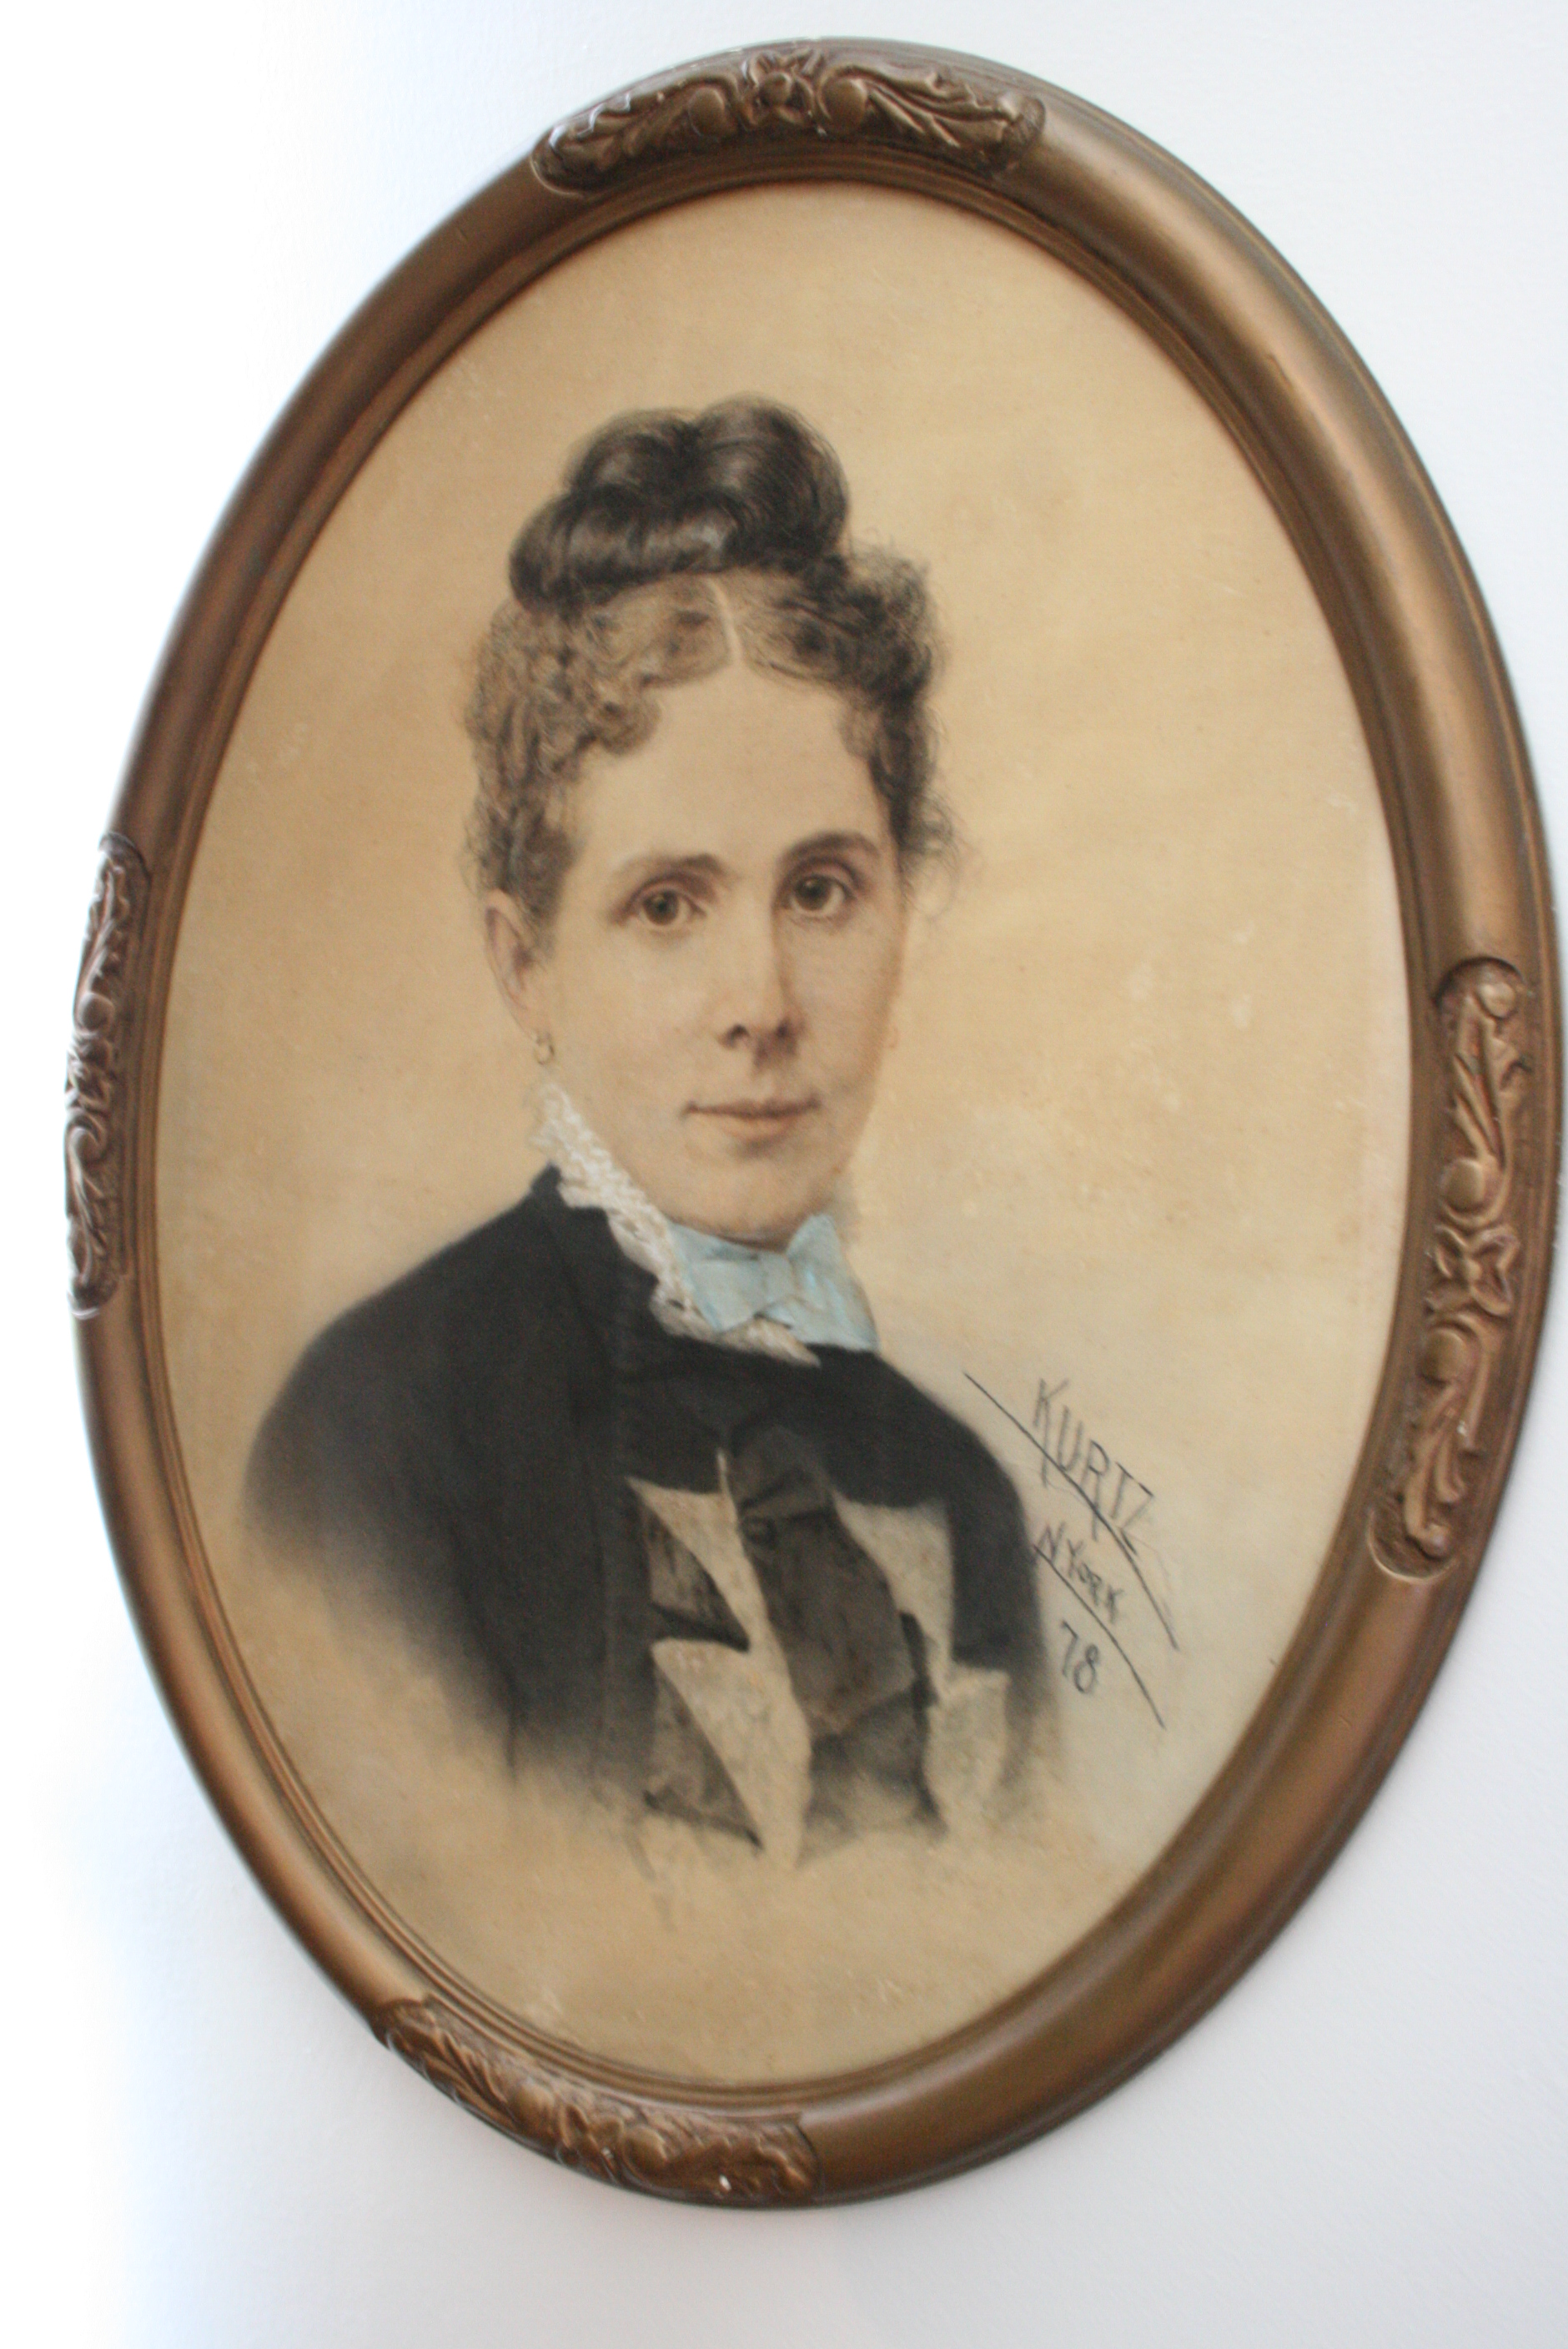 William D. Cleveland's wife Justina Latham's portrait from The Heritage Society permanent collection.